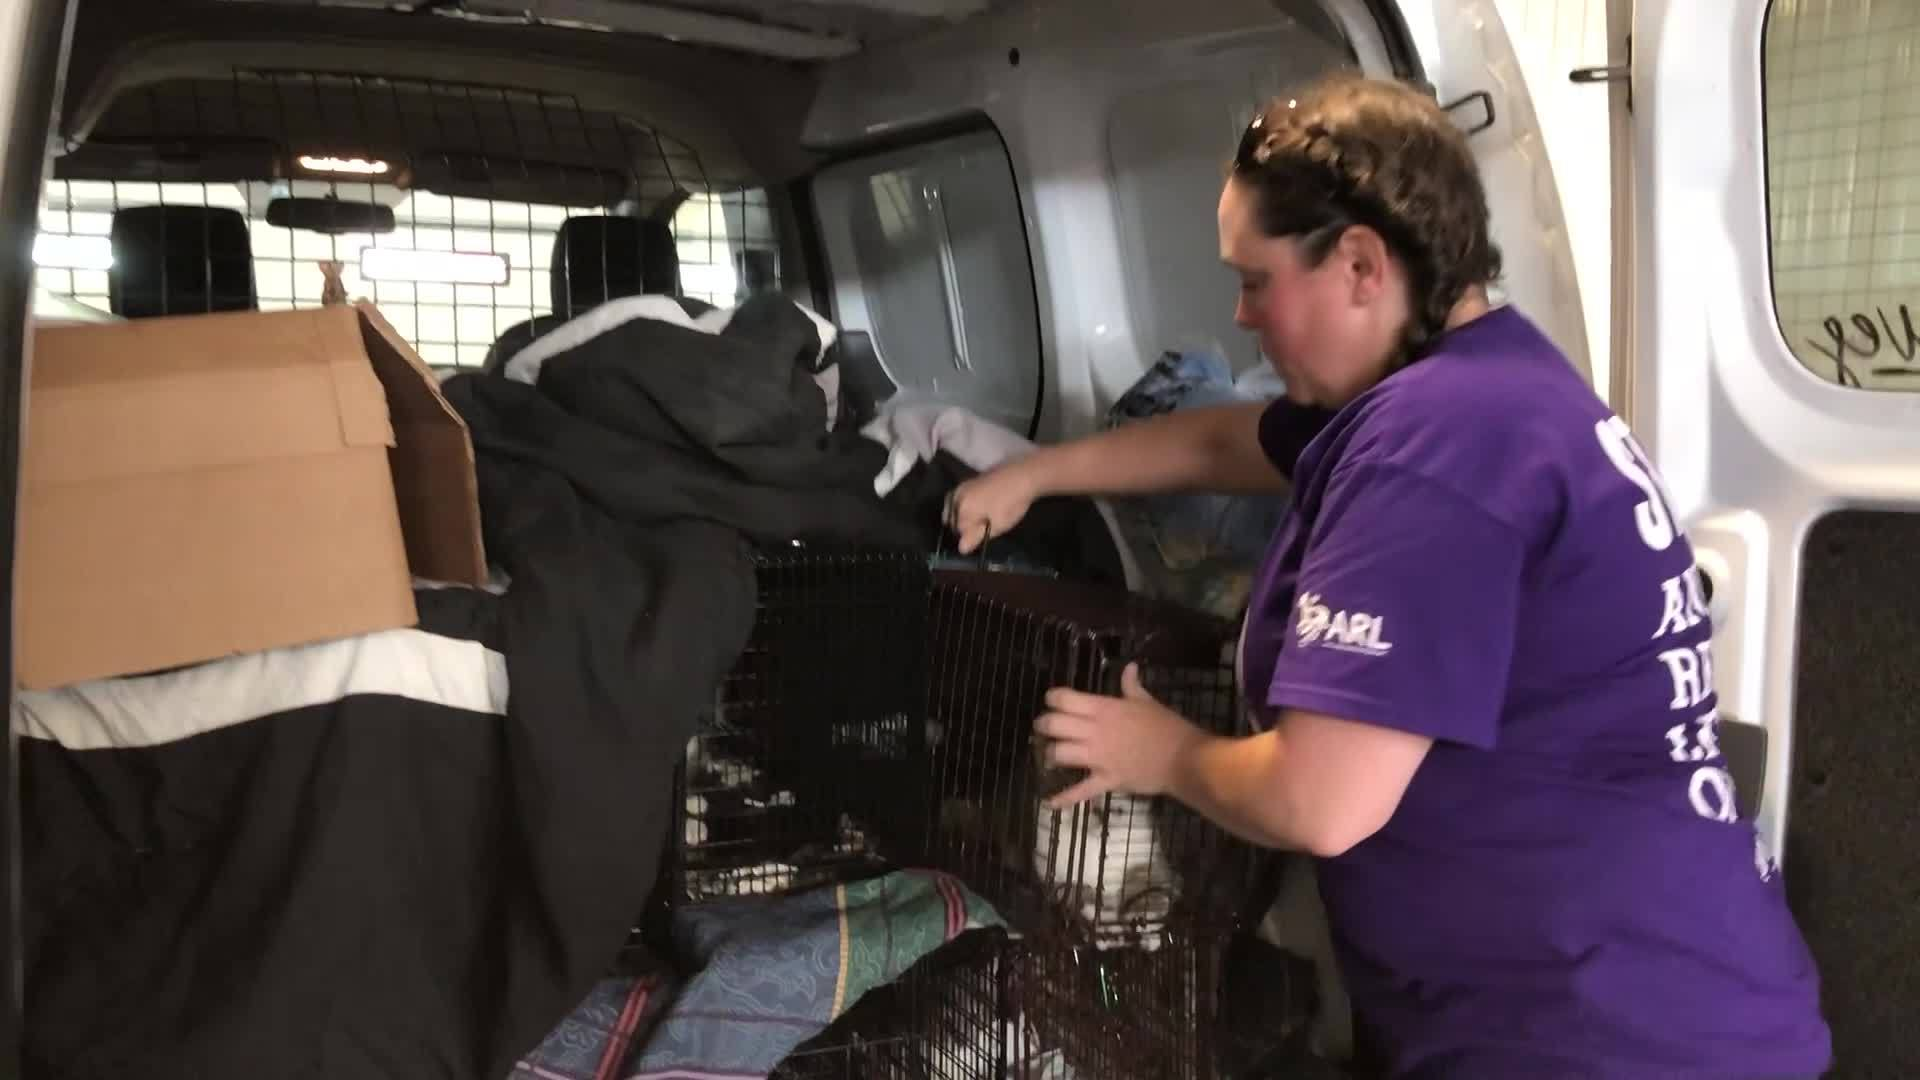 More_cats_are_rescued_from_Madrid_home_2_20190606171224-54710709